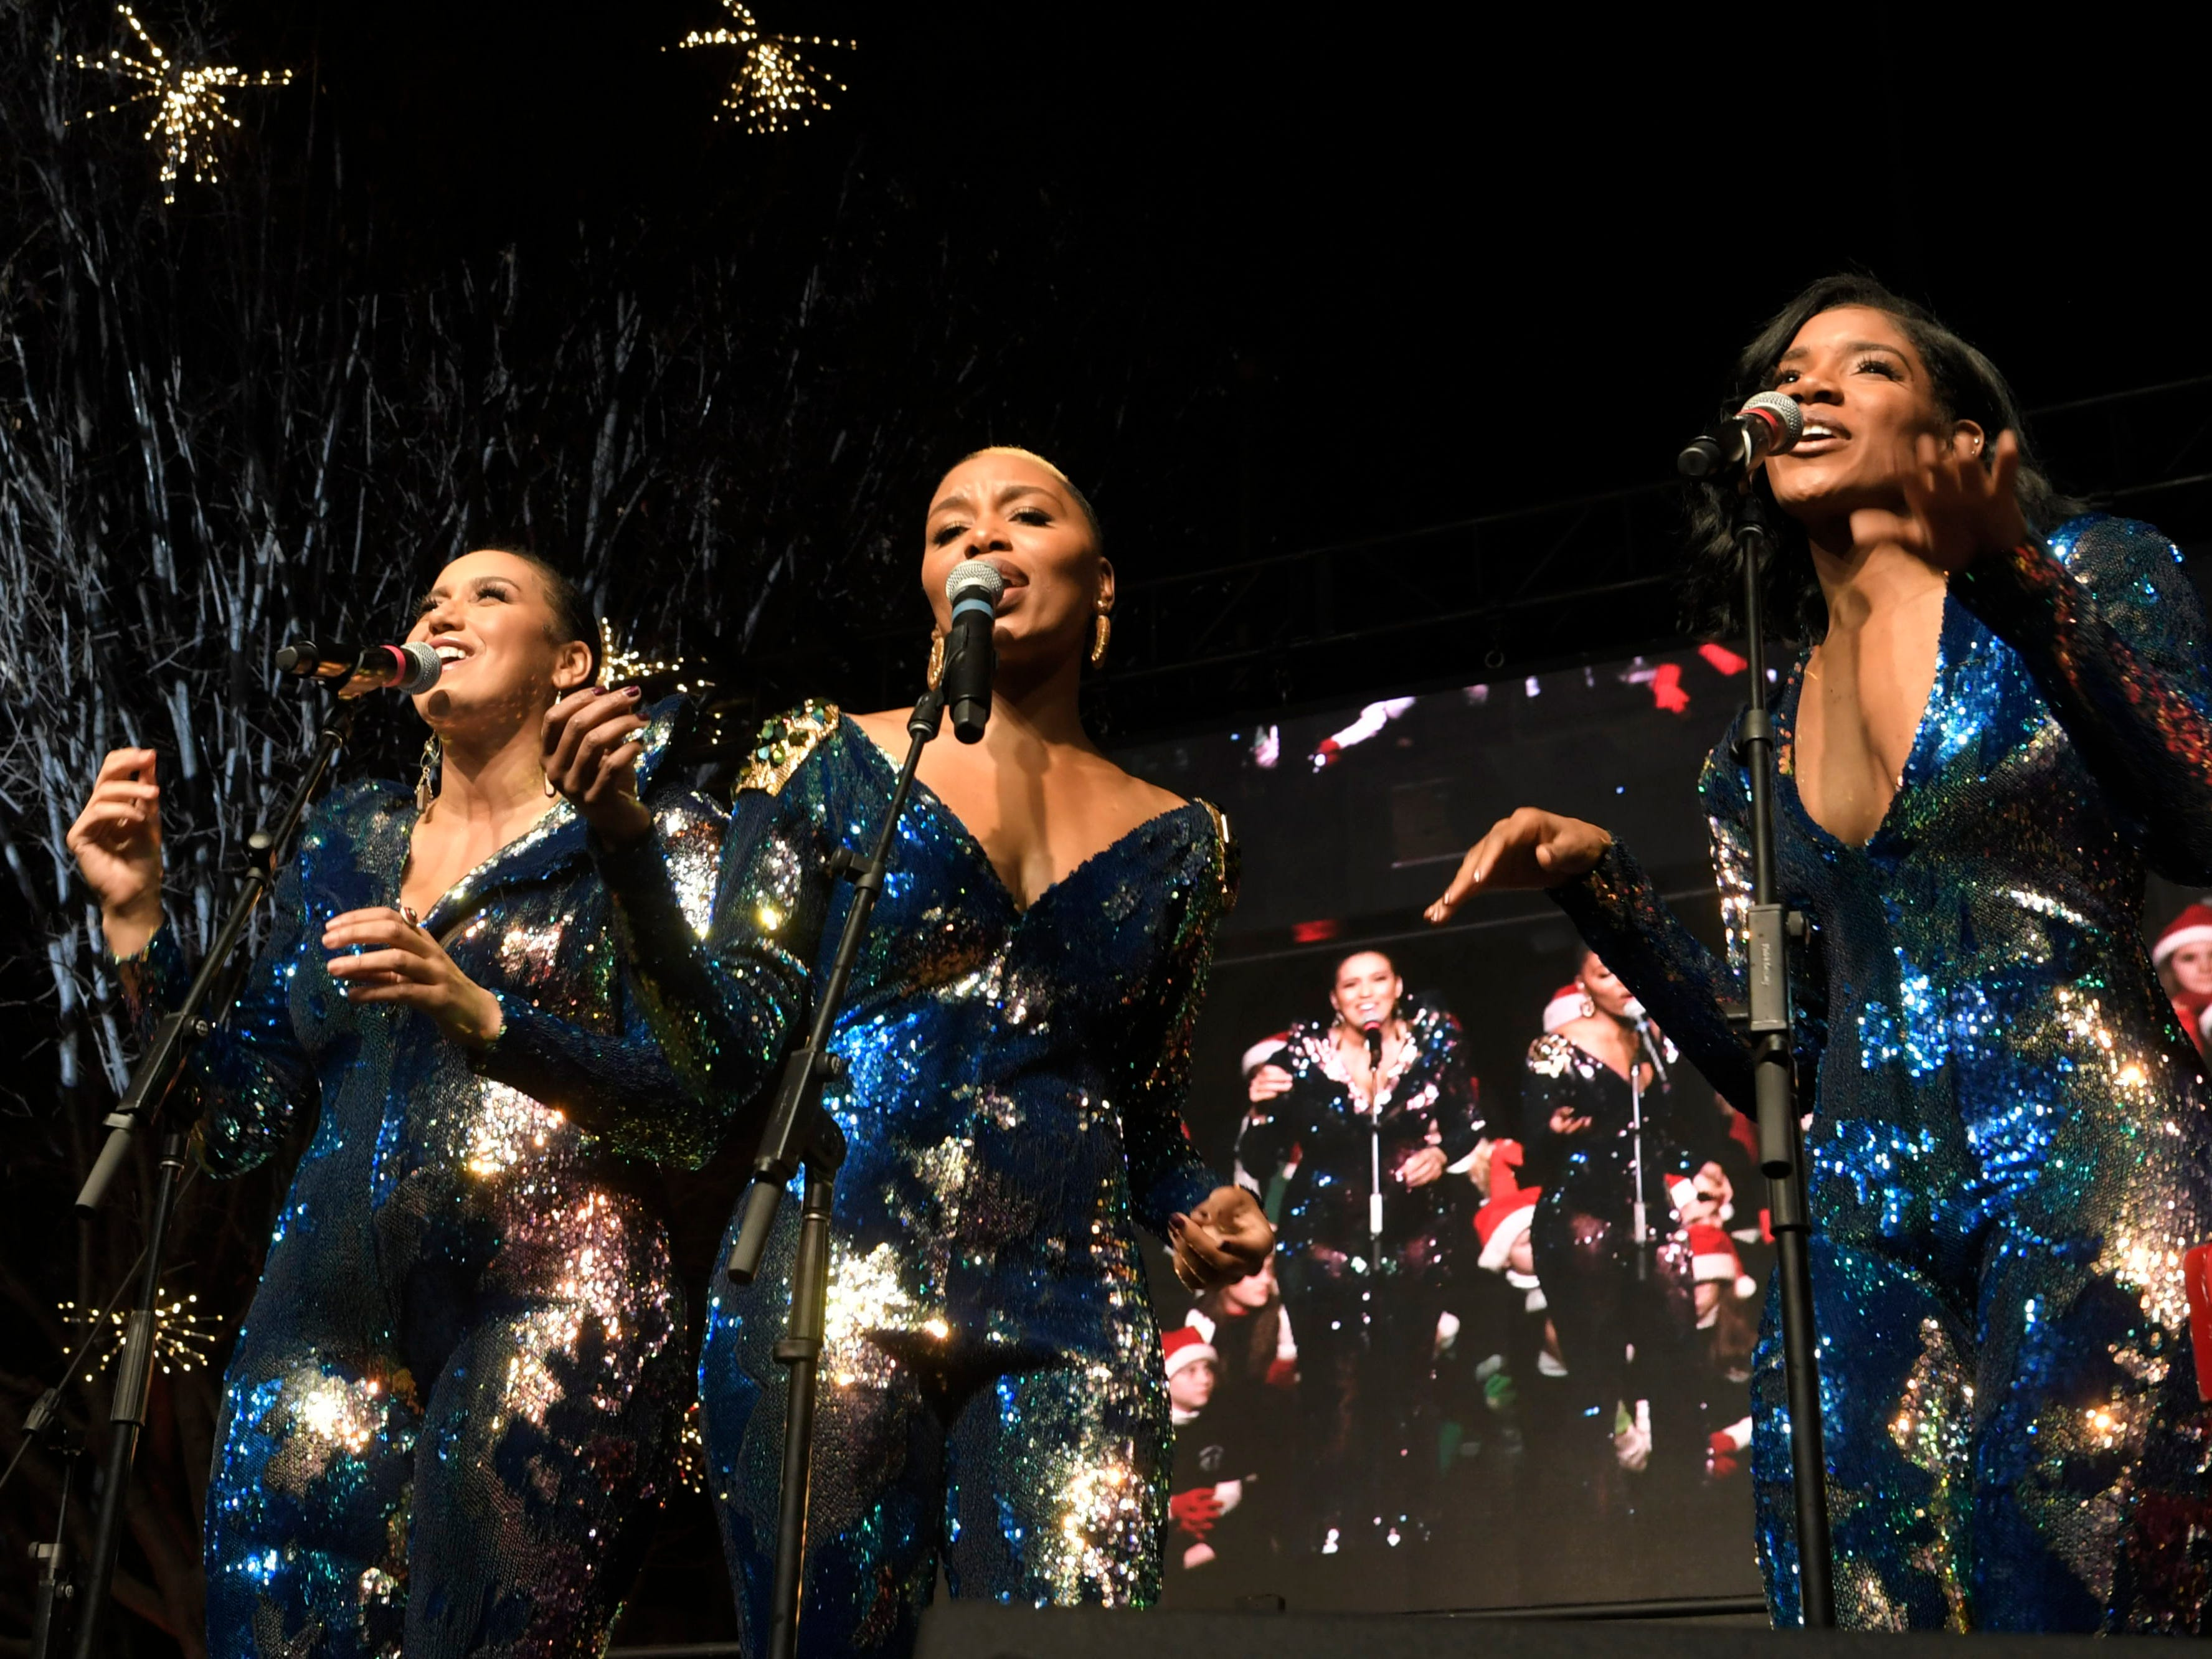 The Shindellas perform at Franklin's annual Christmas Tree Lighting on Sunday, Dec. 2, 2018.